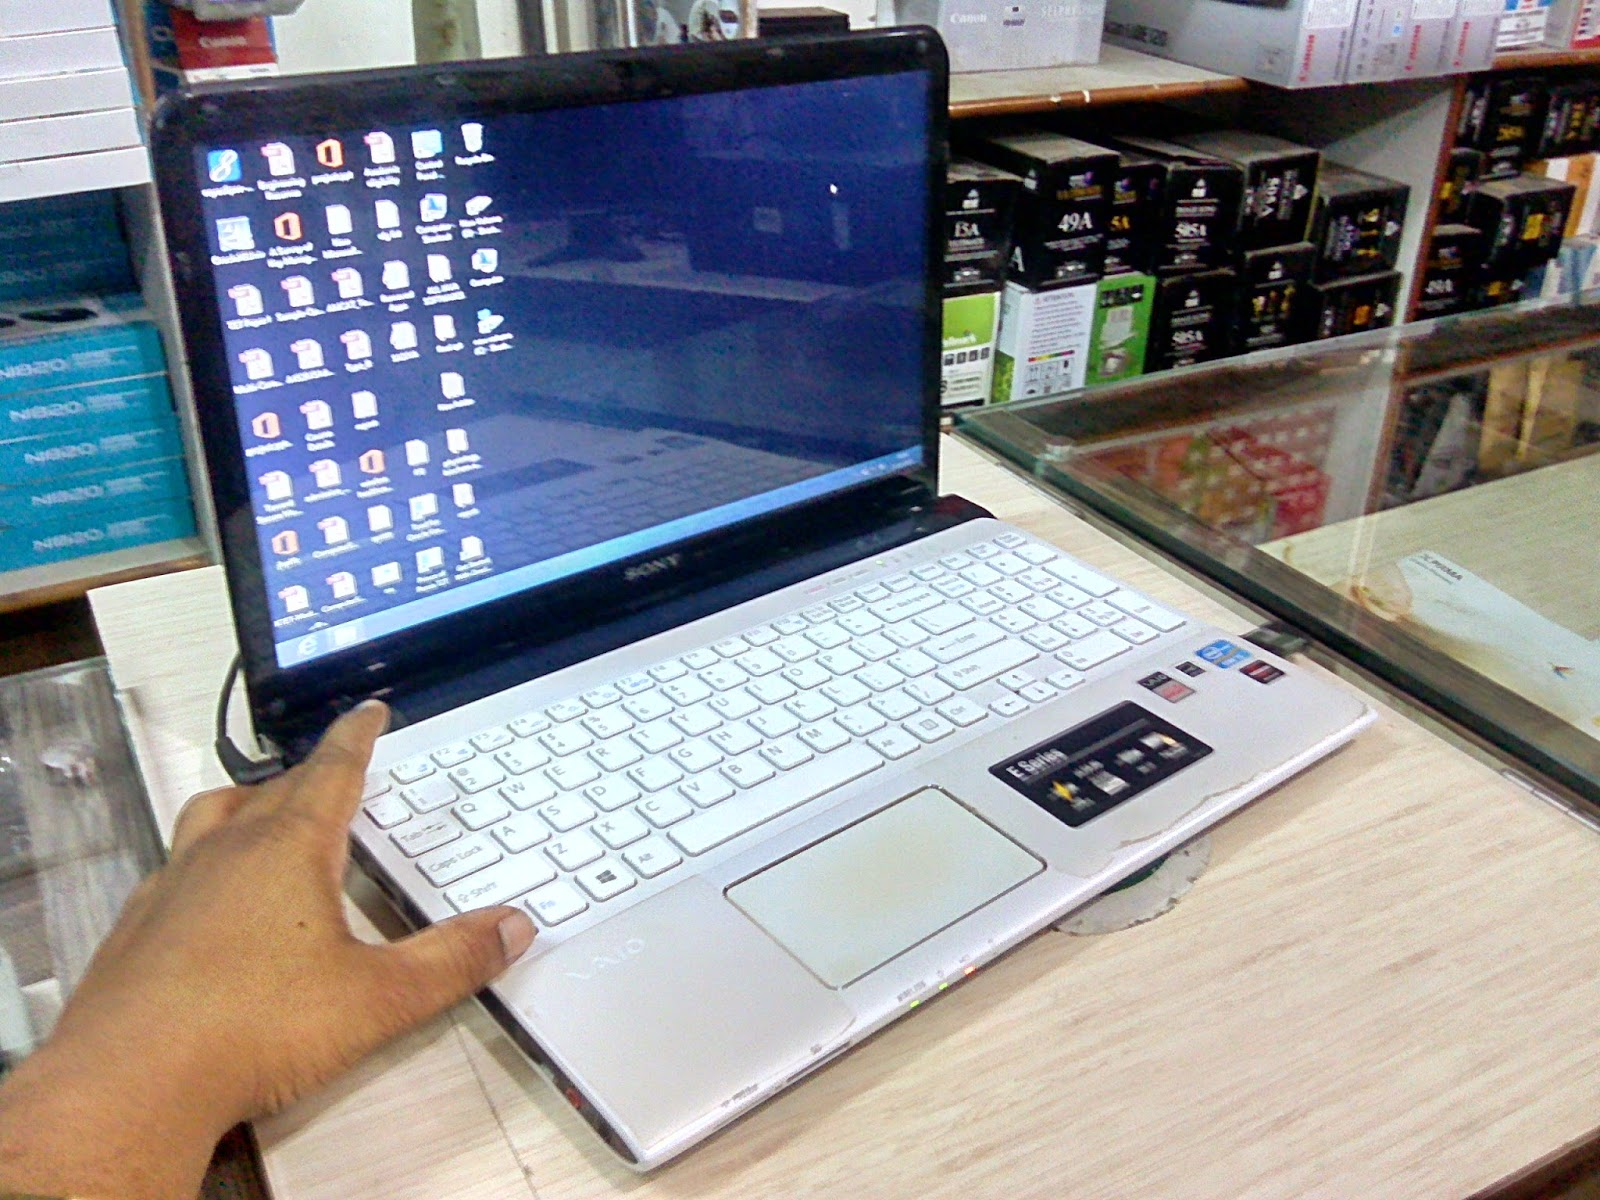 Sony Vaio Laptop core i5 (SVE151B11W) Price, Specification & Unboxing